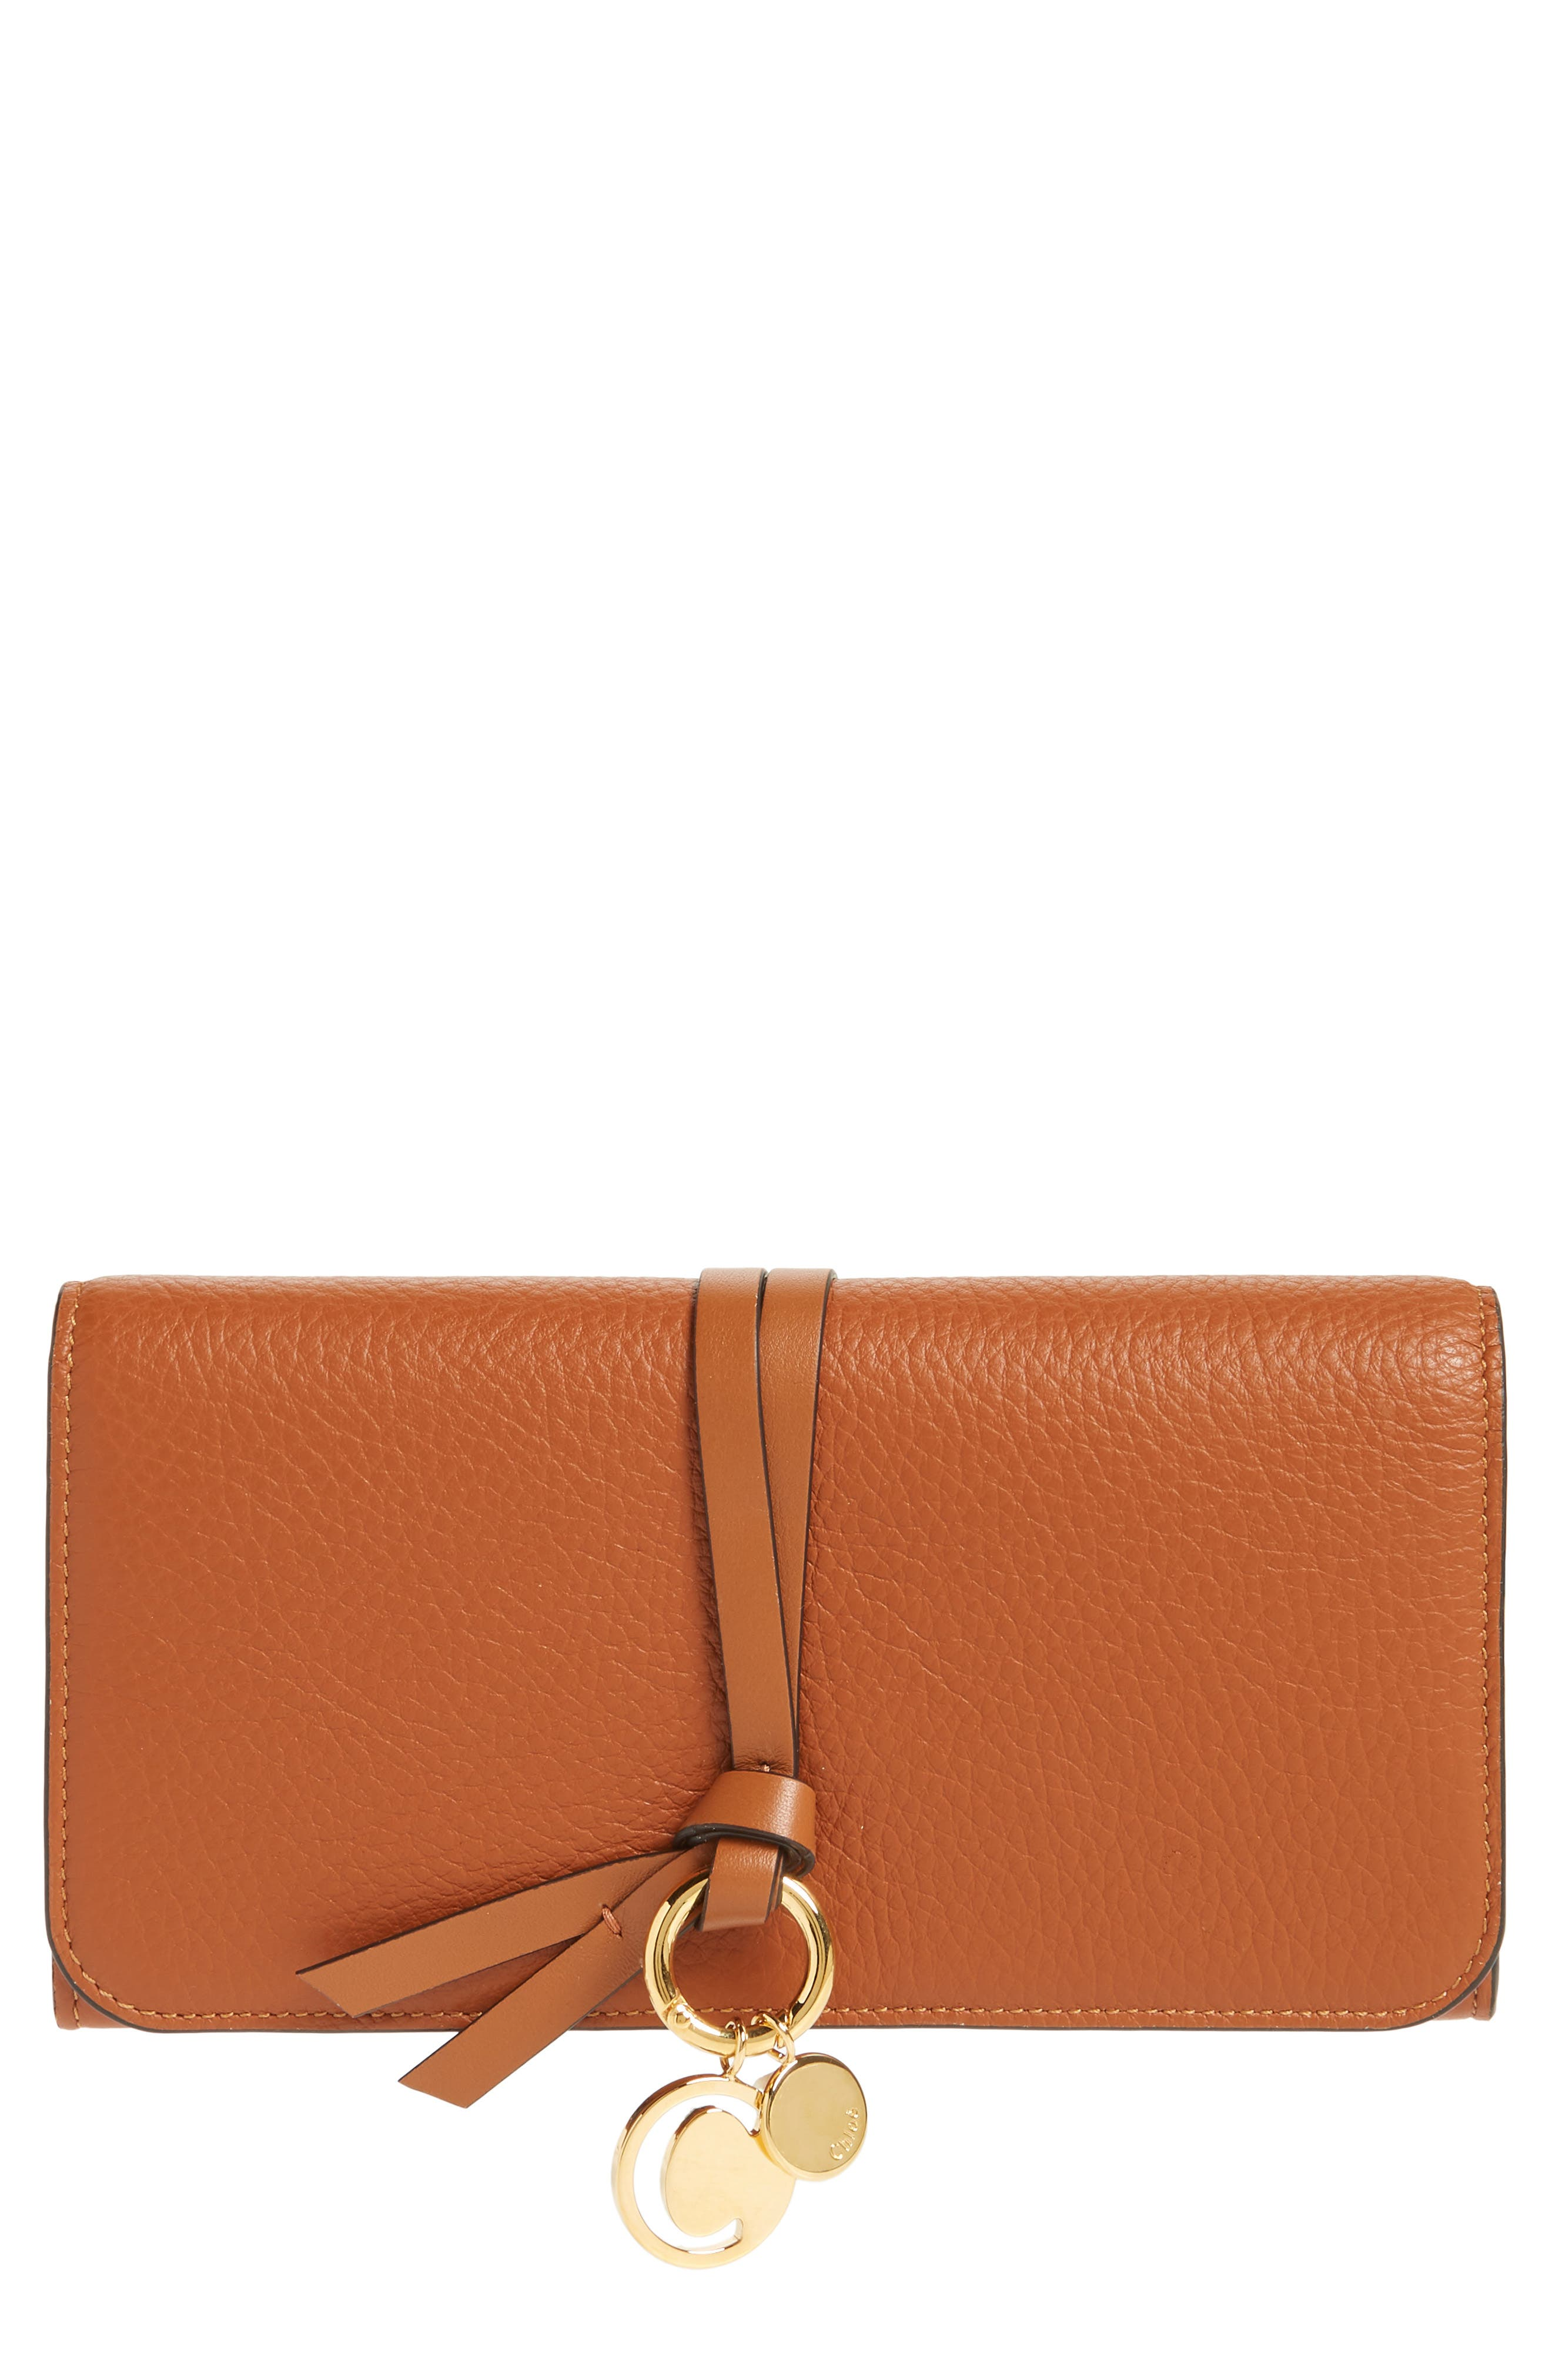 Alphabet Leather Wallet,                         Main,                         color, TAN